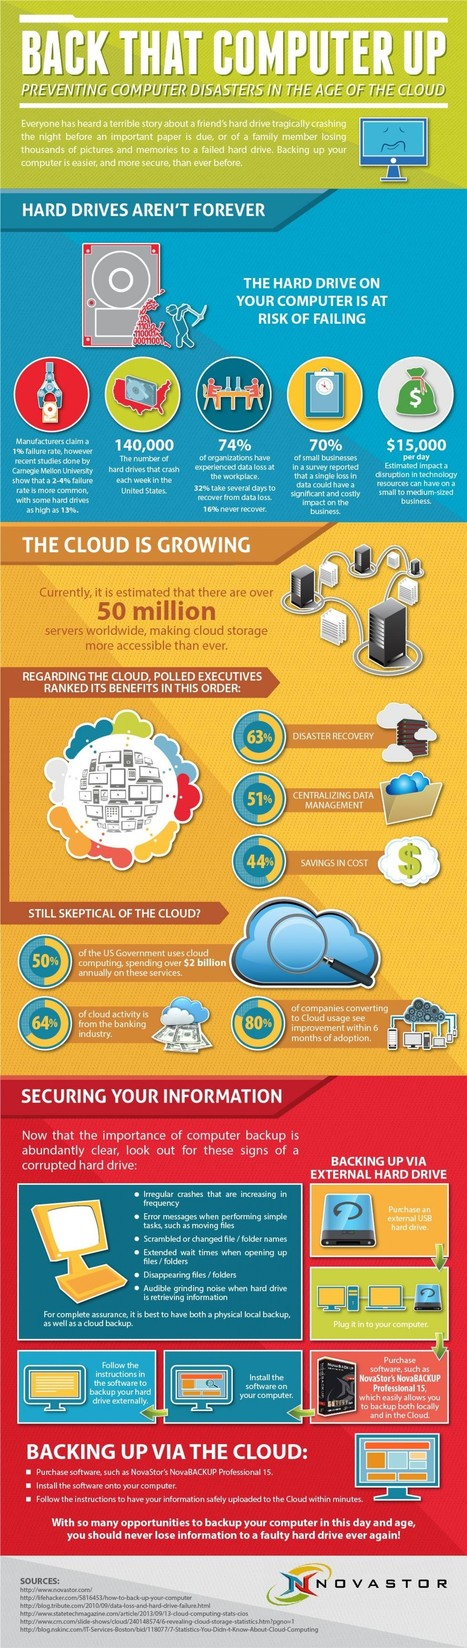 Back That Computer Up: Preventing Computer Disasters In The Age Of The Cloud [INFOGRAPHIC] - Infographics & Data Visualization | Computer Assisted Language Learning and Brain Science | Scoop.it